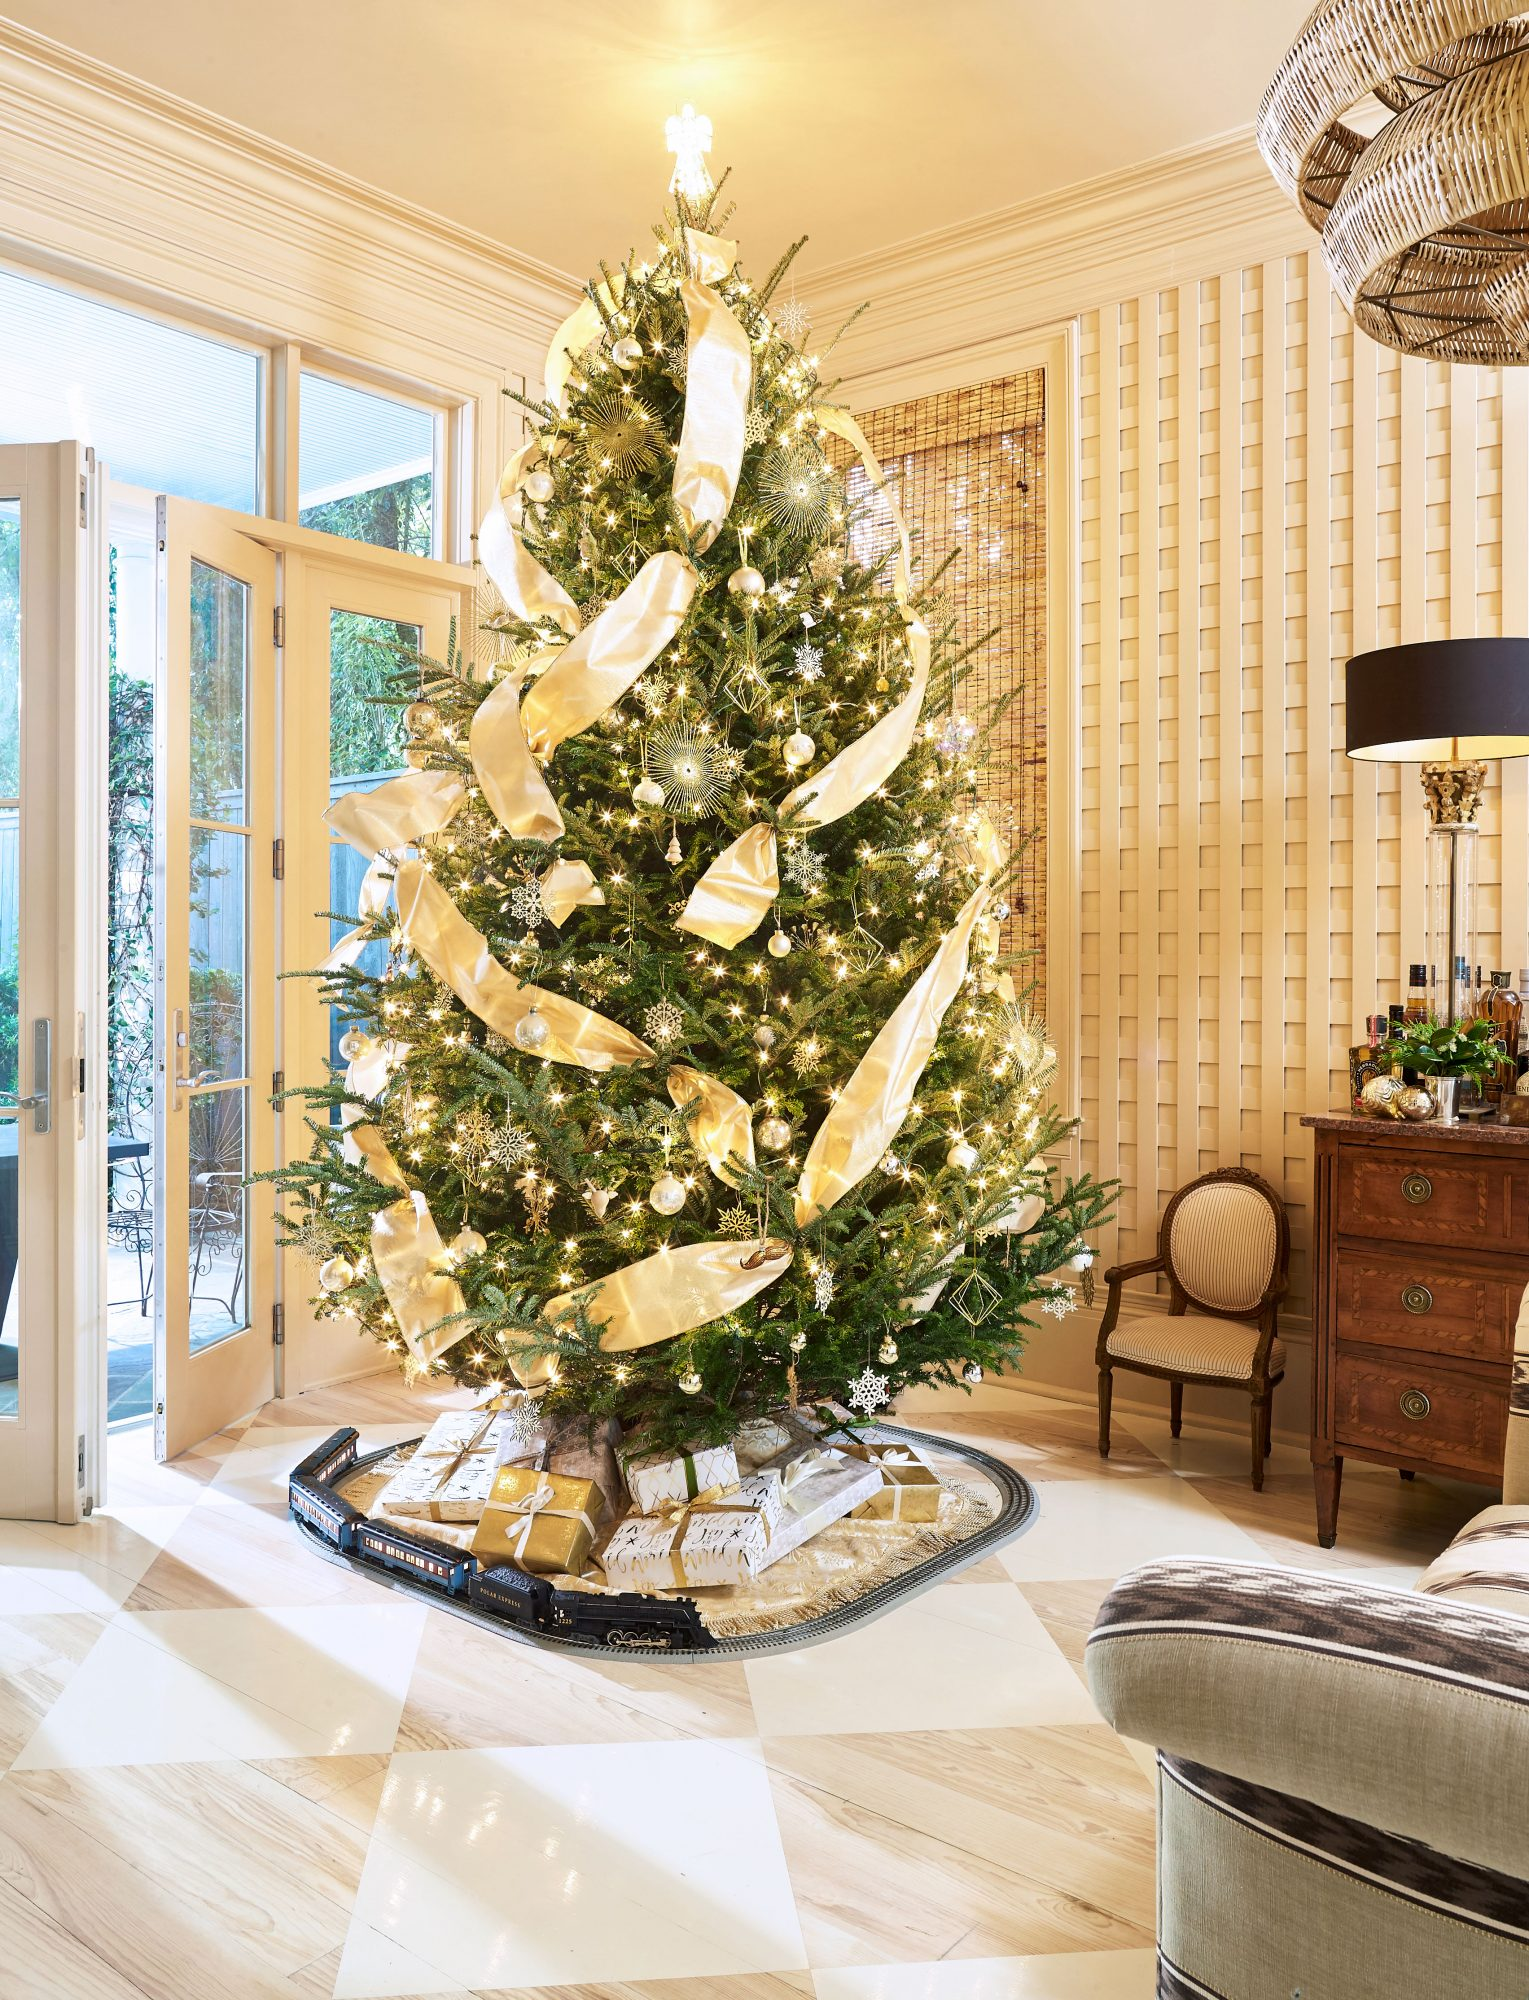 These 10 Christmas Tree Toppers Are Festive Finishing Touches Southern Living